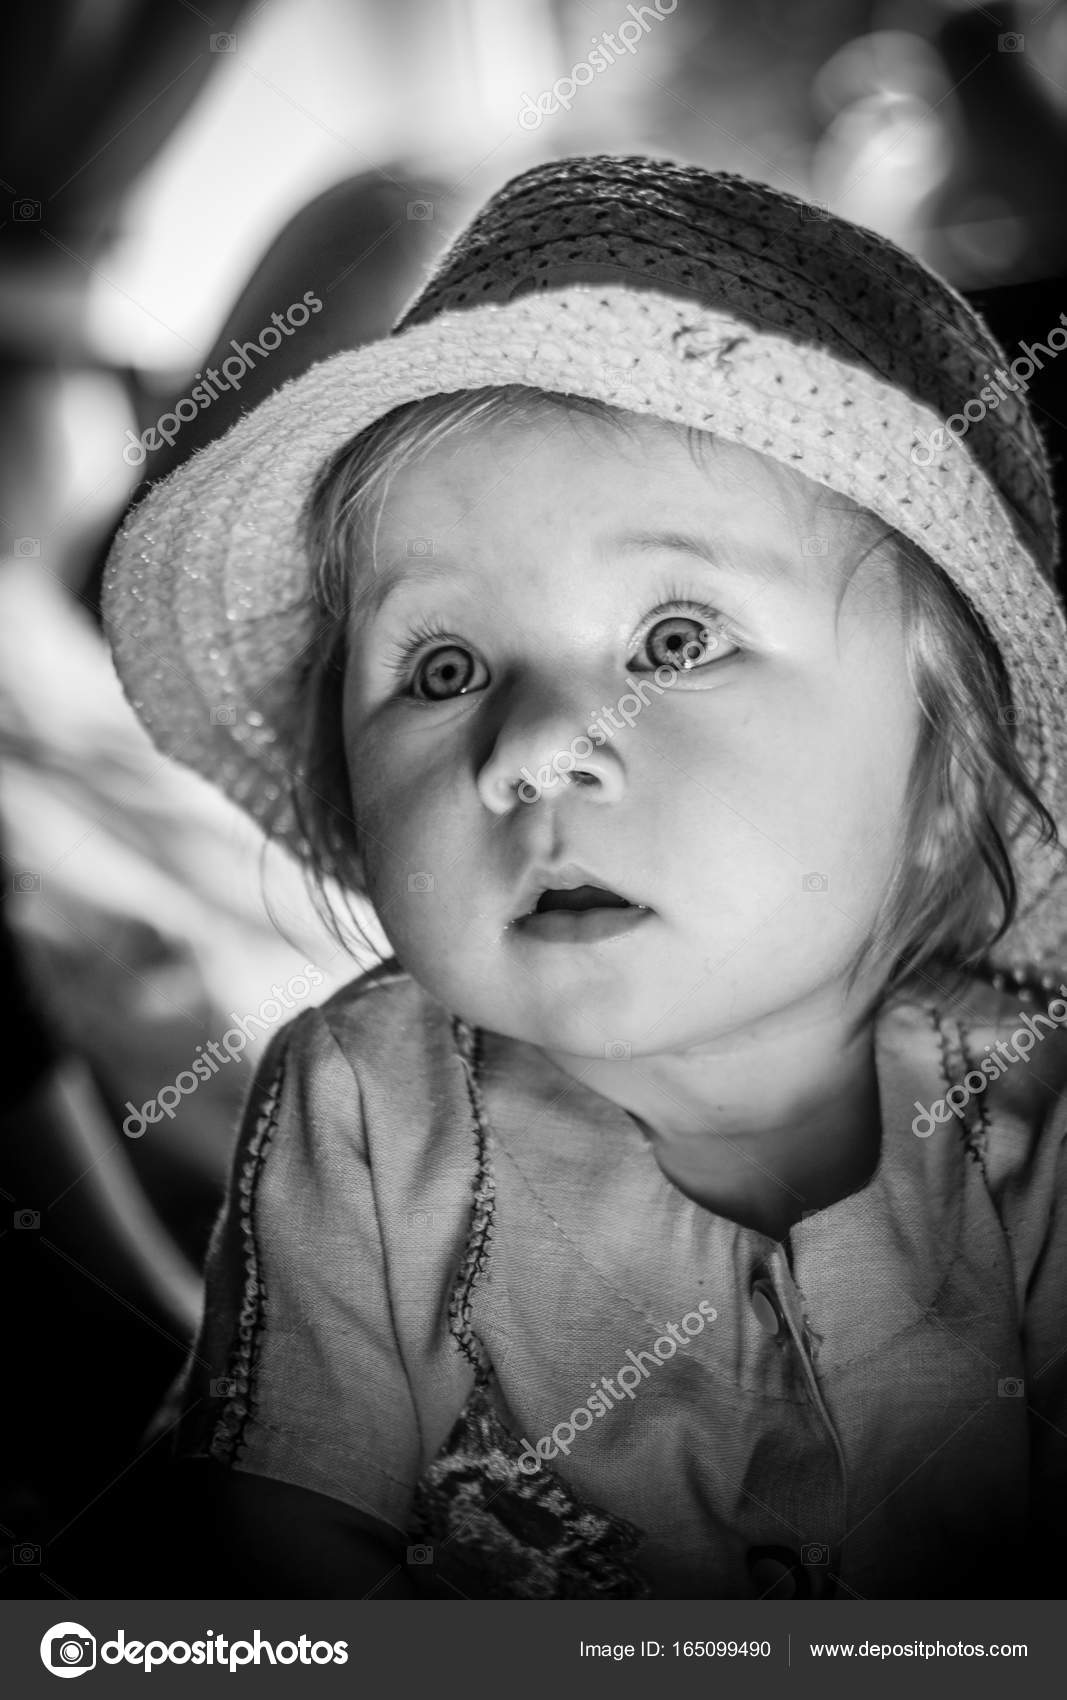 black and white portrait of a young child. a cute baby. — stock